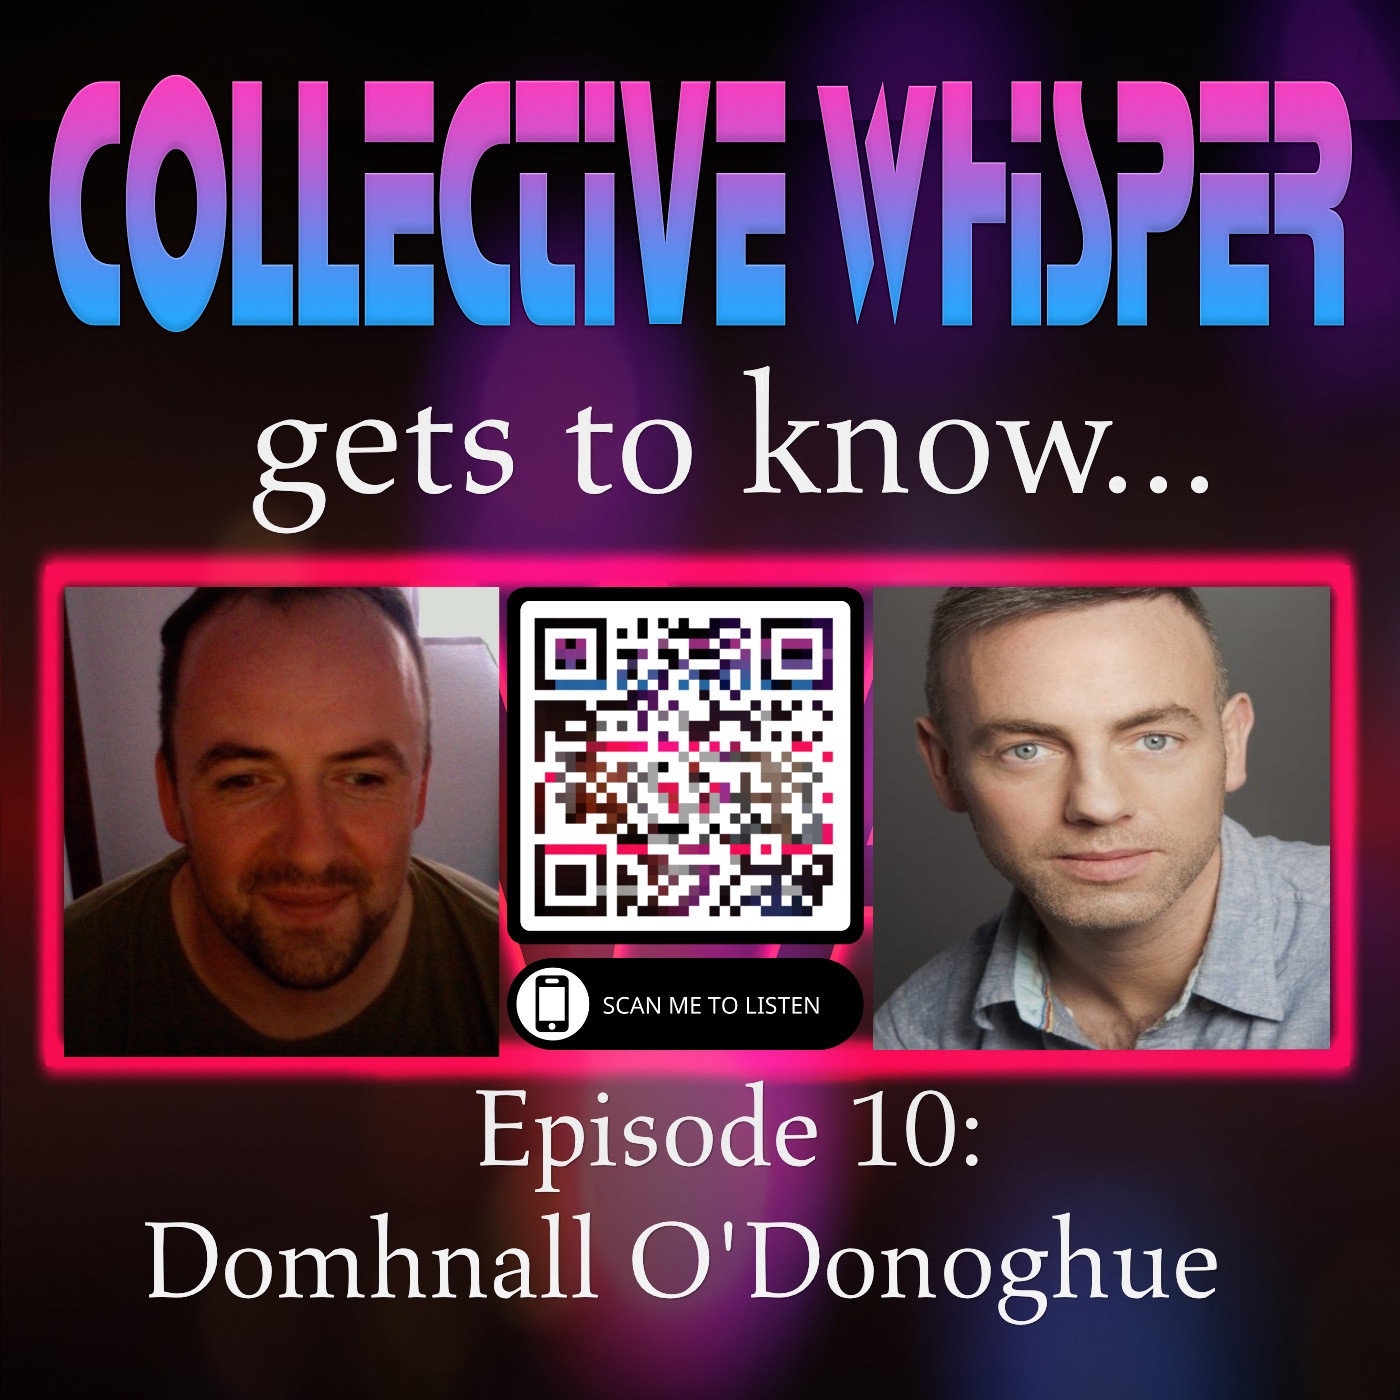 Collective Whisper gets to know.......Domhnall O'Donoghue